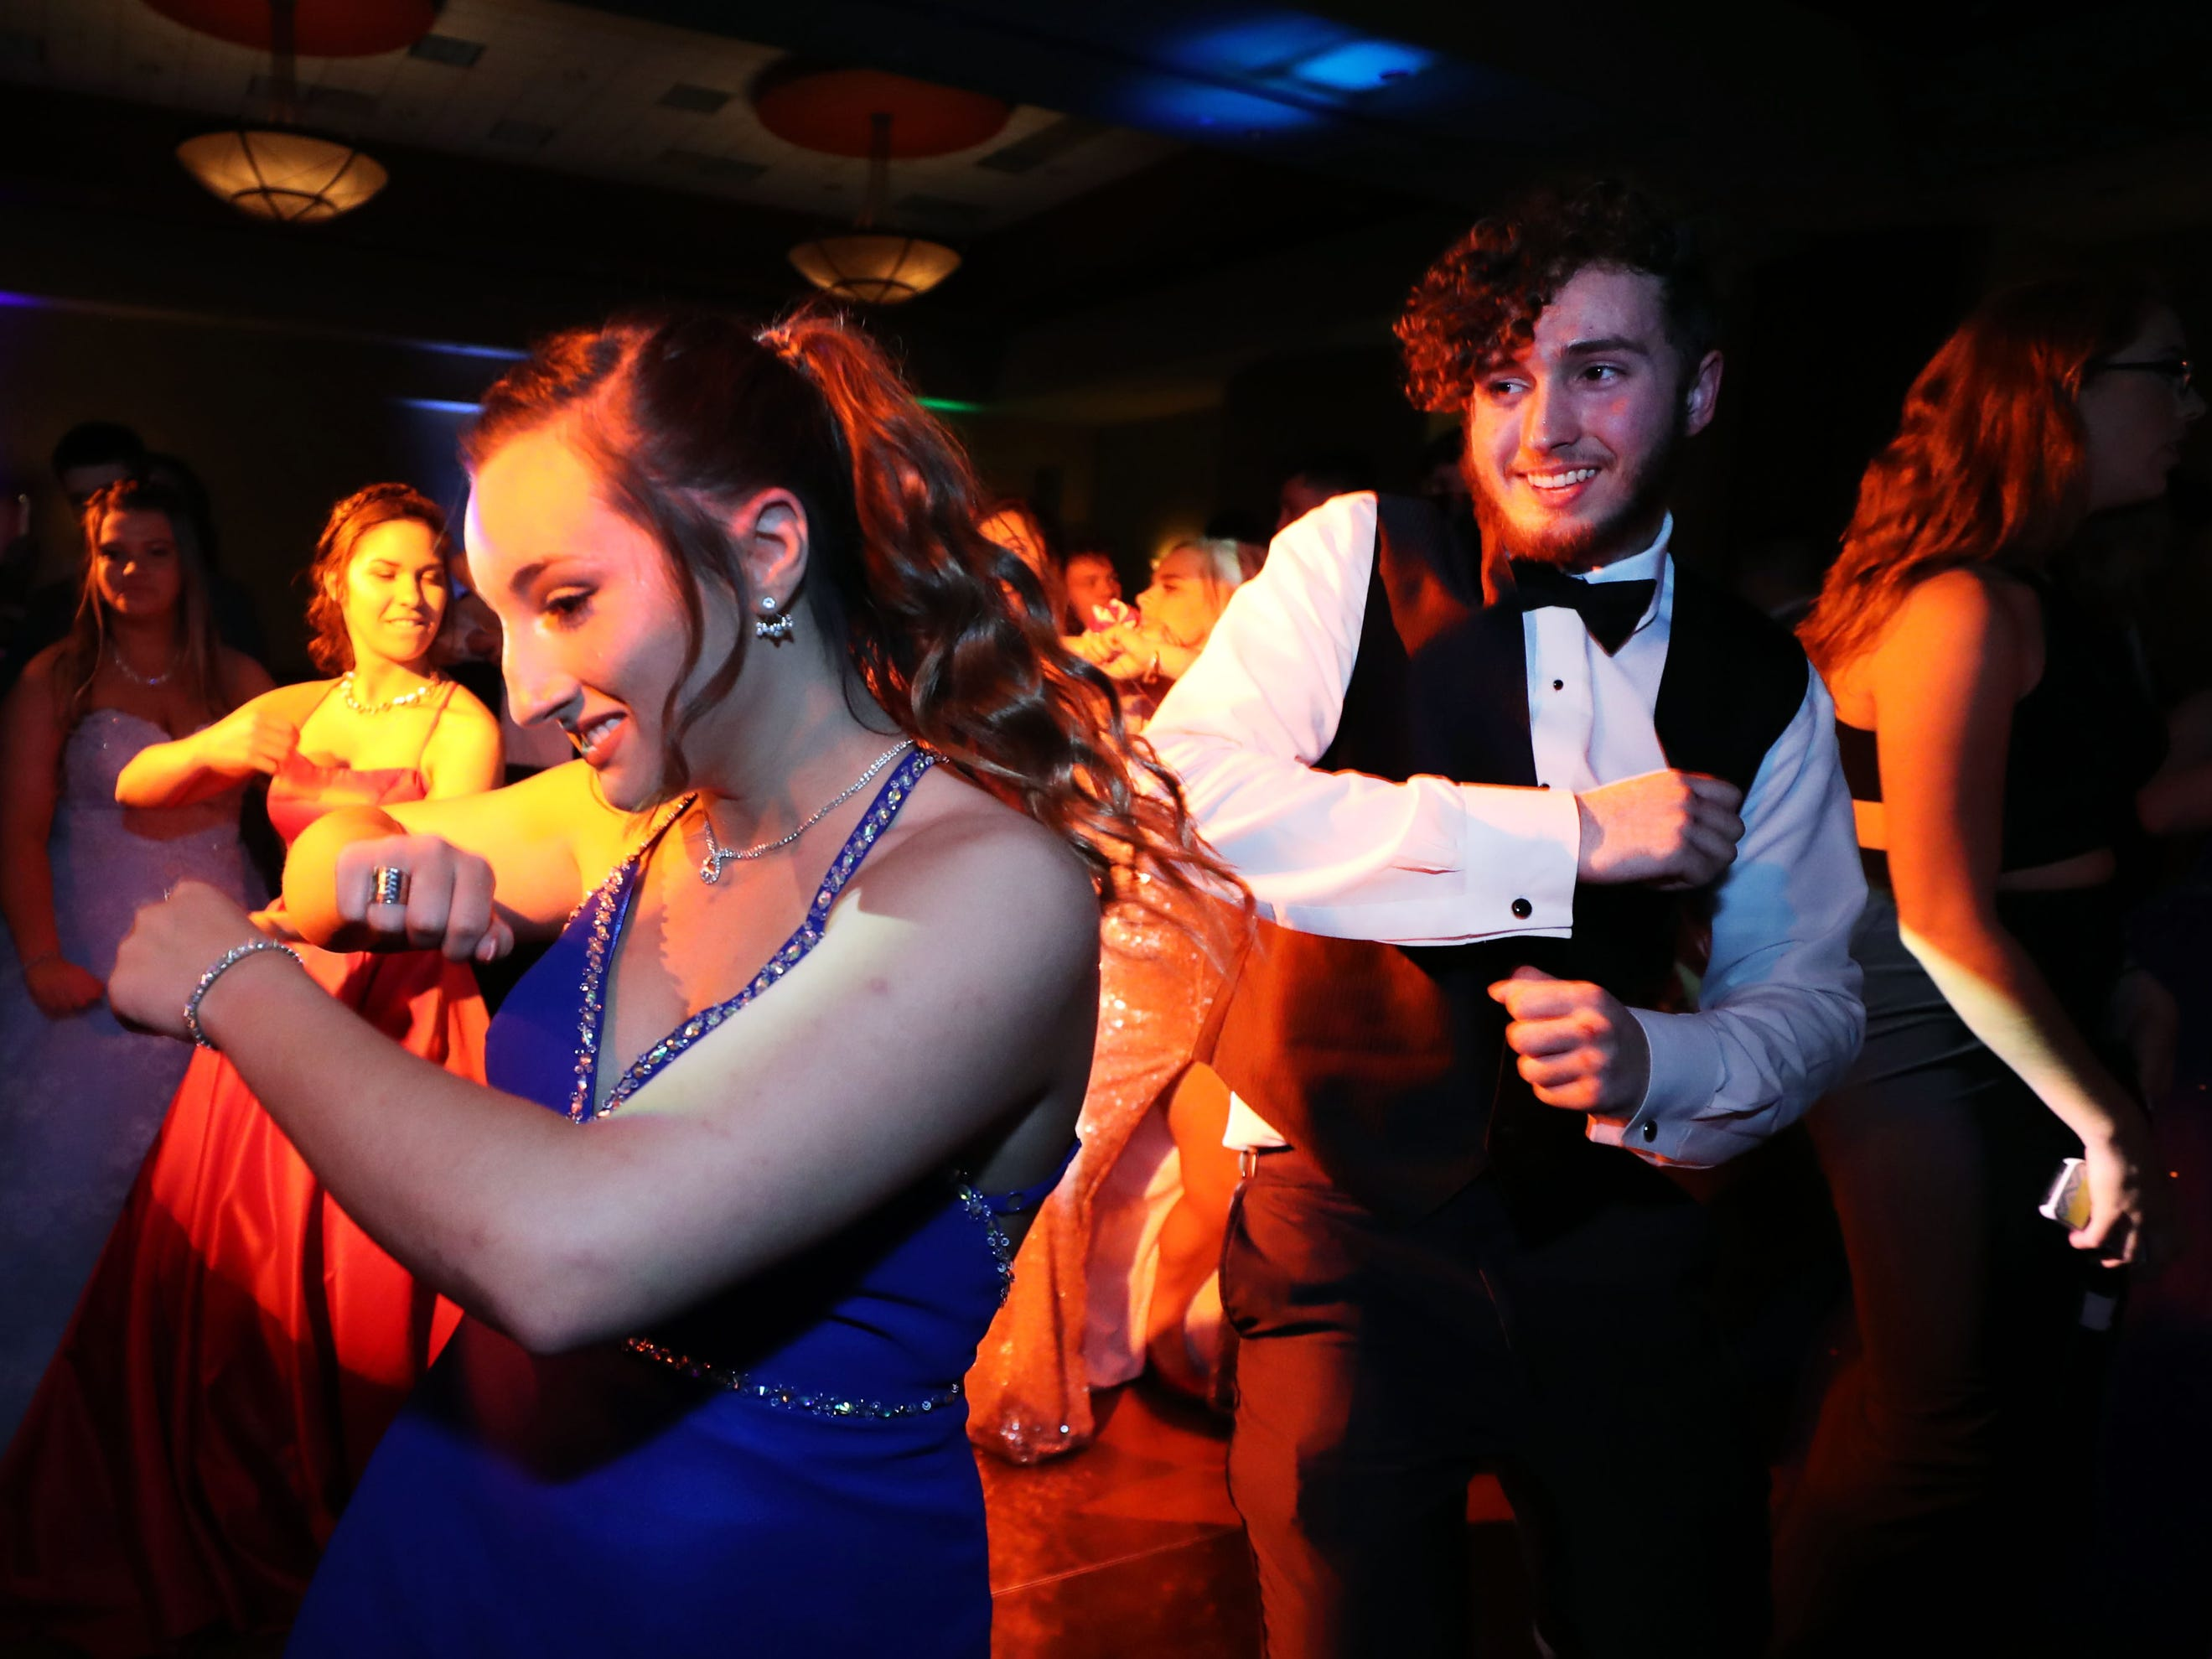 Mackenzie Feasel, left and Sebastin Parrott, right dance at Eagleville's Prom held at Embassy Suites, in Murfreesboro on Thursday April 5, 2019.